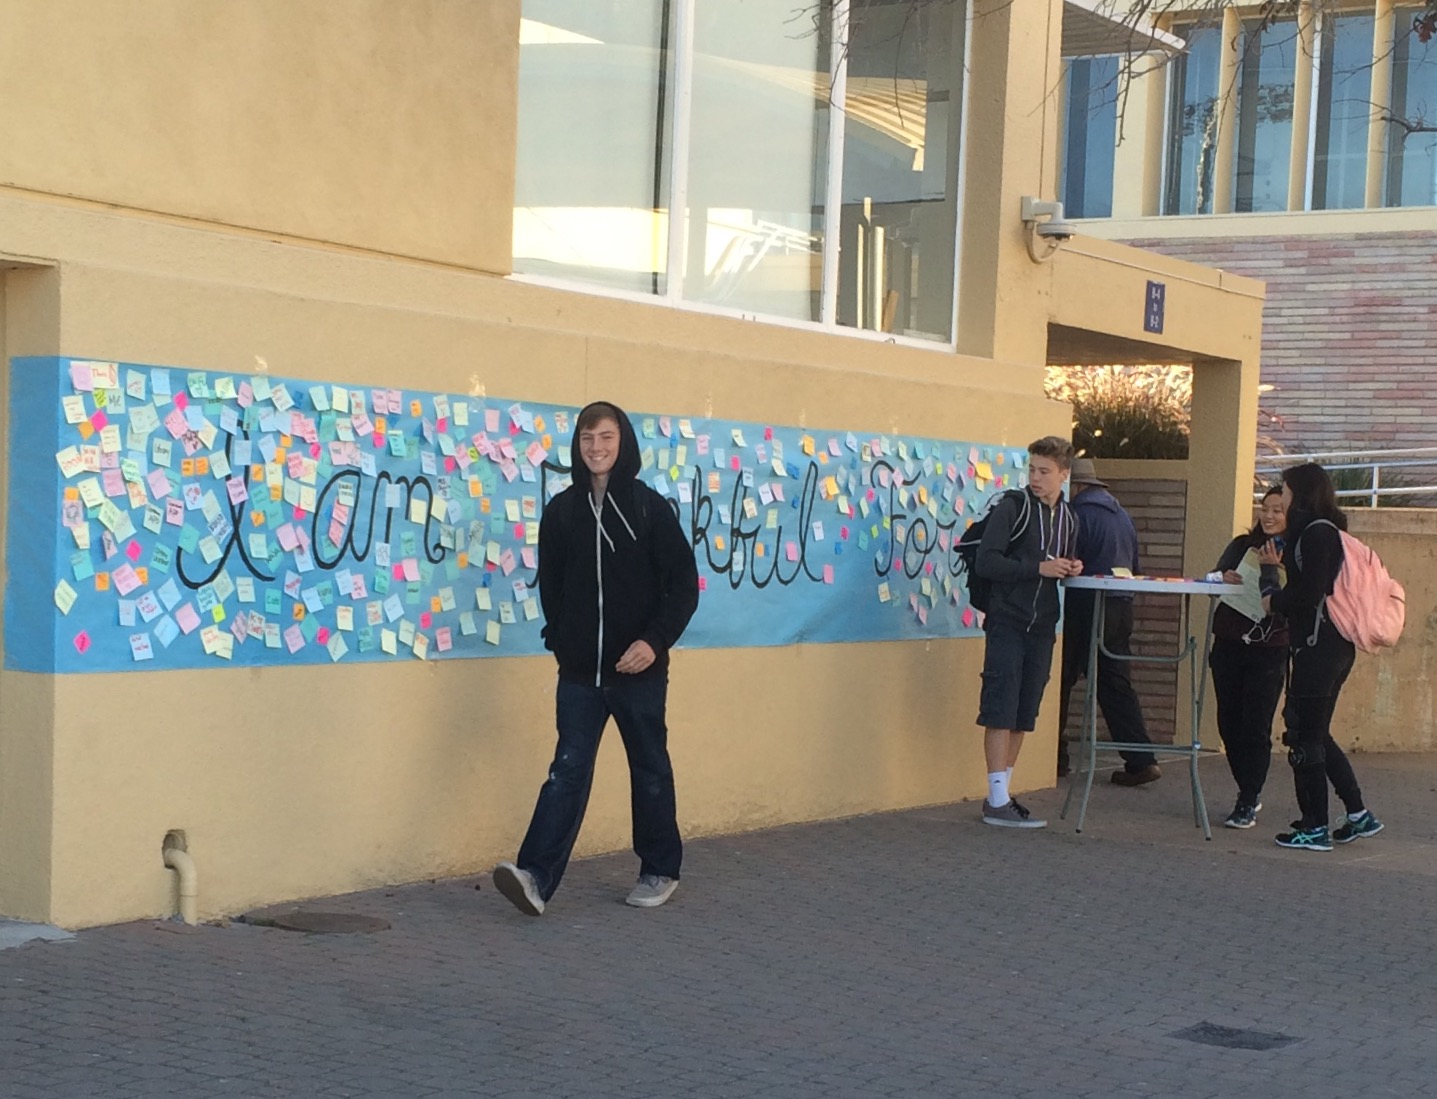 Students add to and walk by a mural that reads